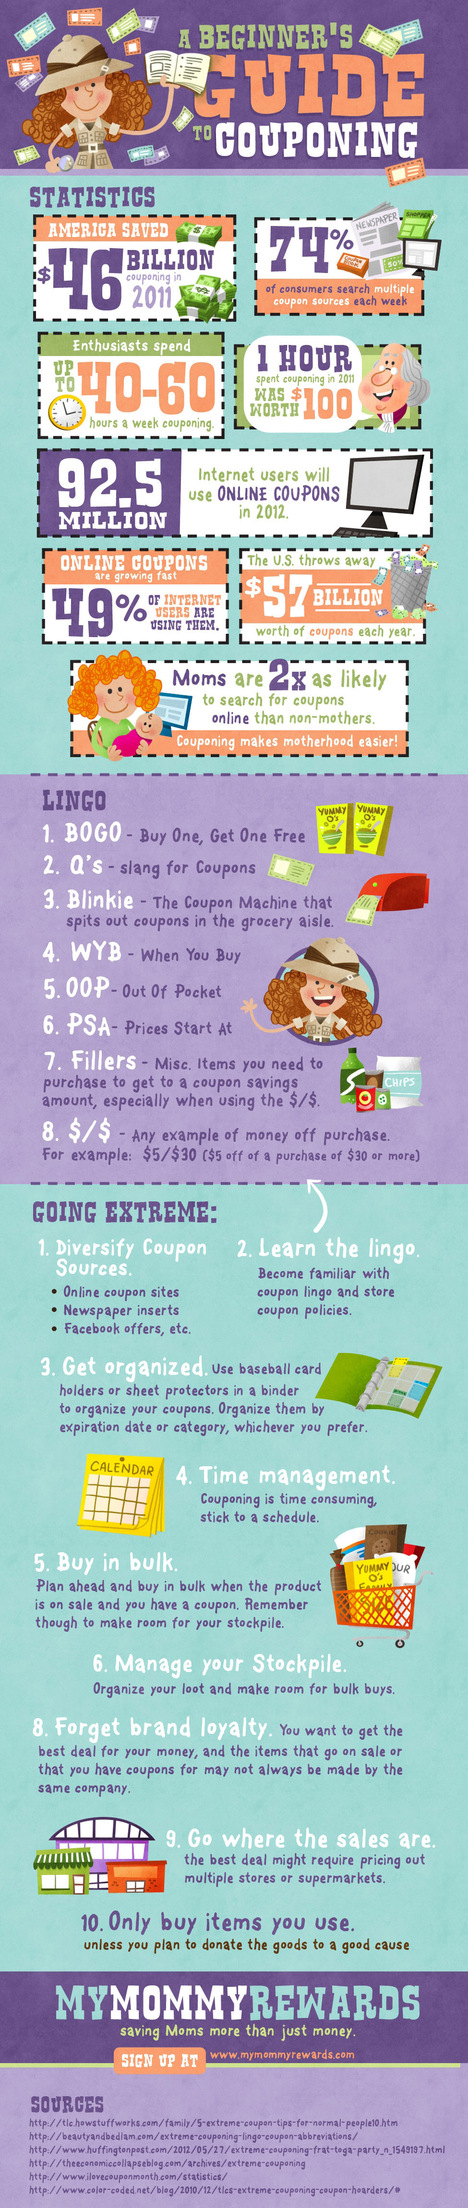 Couponing Infographic